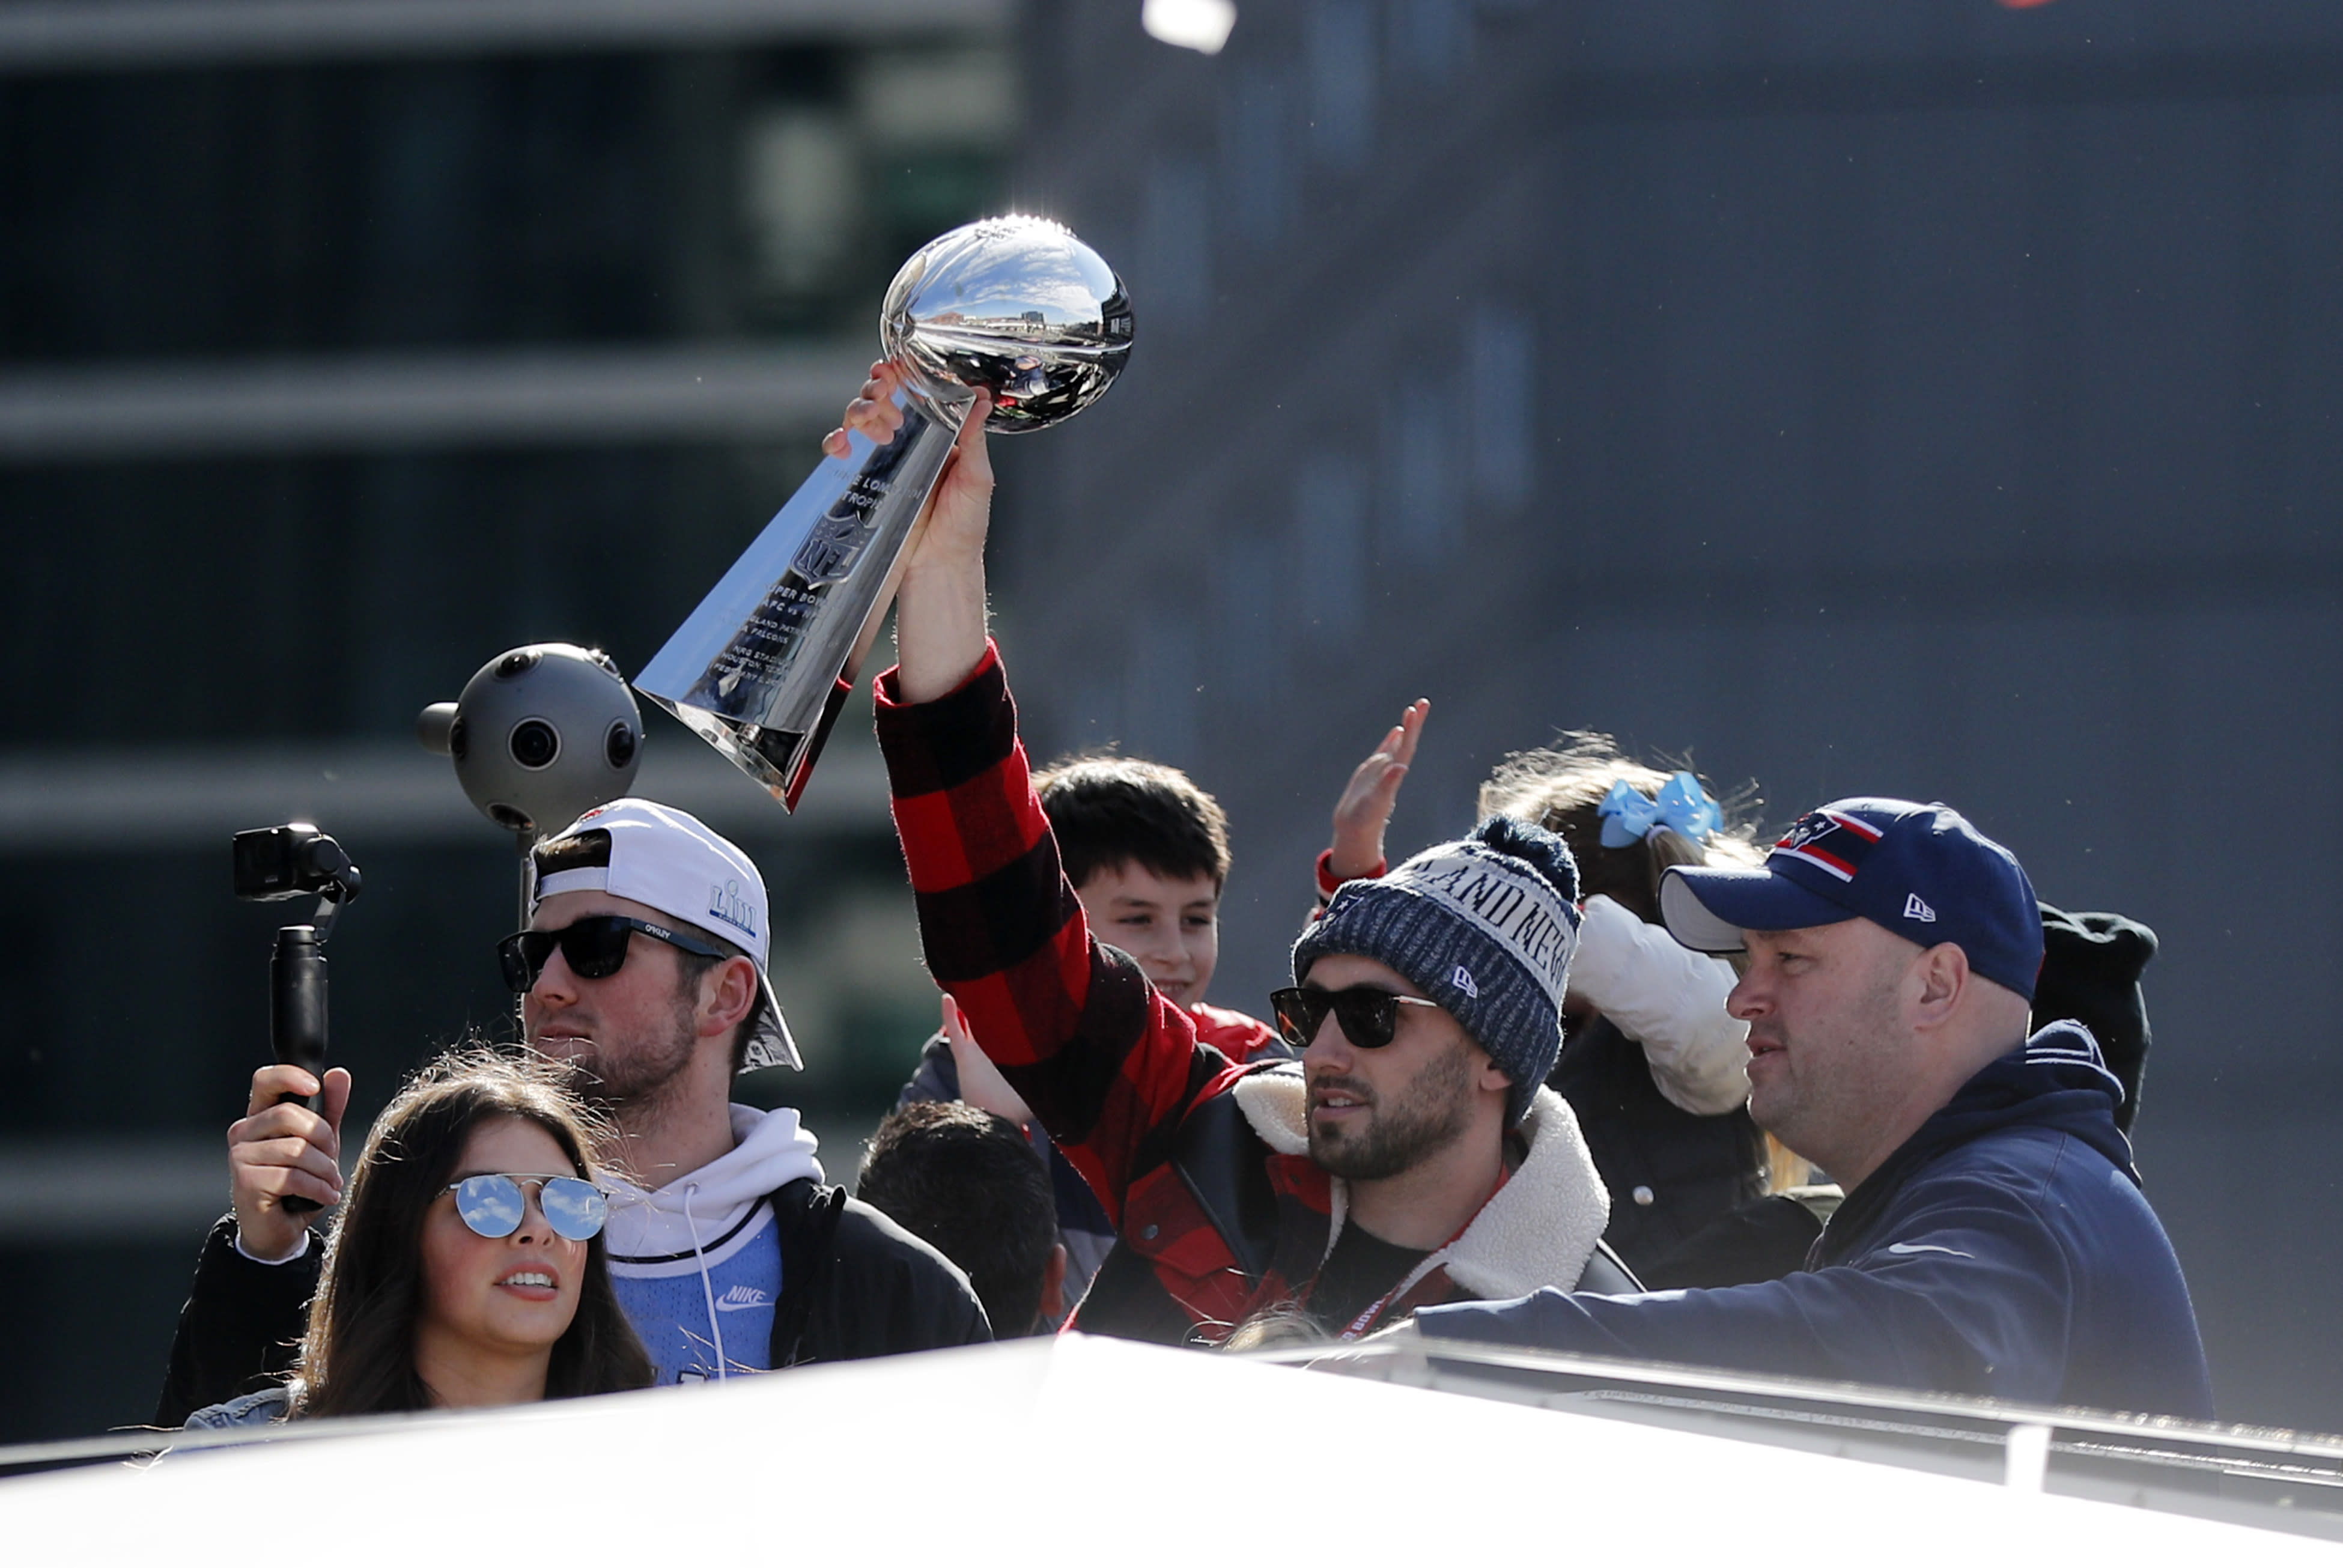 He didn't play in Super Bowl LIII, but New England Patriots backup quarterback Brian Hoyer played a big role in the team's win. (Getty Images)